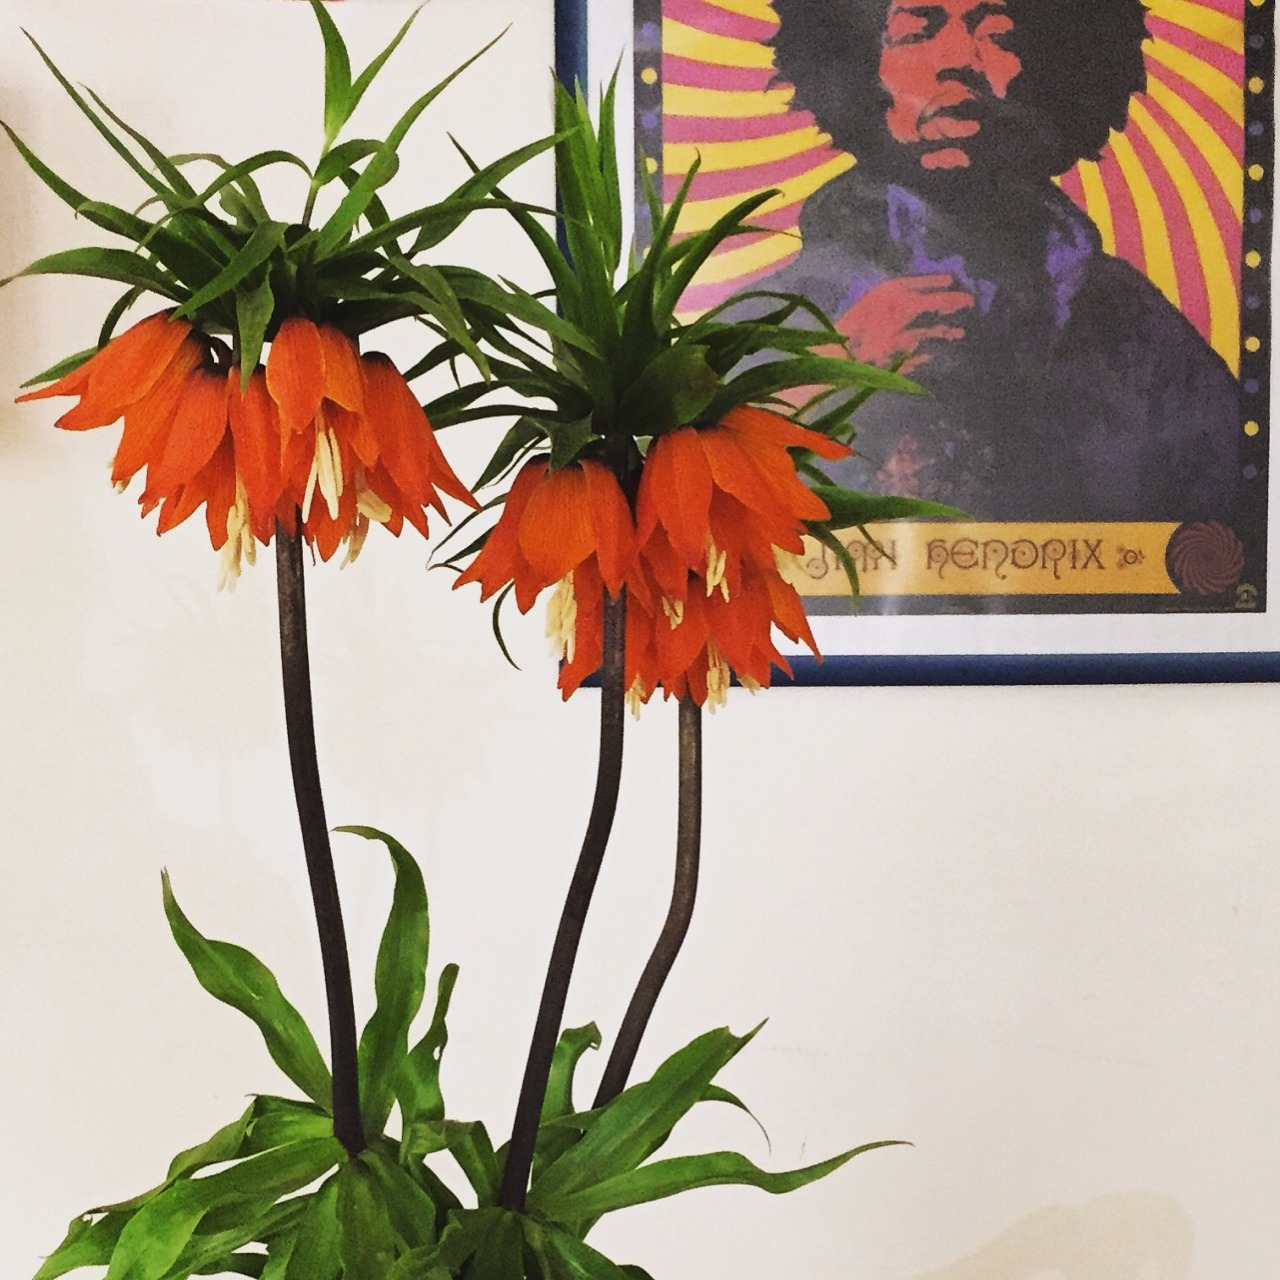 Spotted in a cafe:  Jimi Hendrix gettin' his spring on with flowering branches of Lacryma di Cristo.  Piedmont, Italy